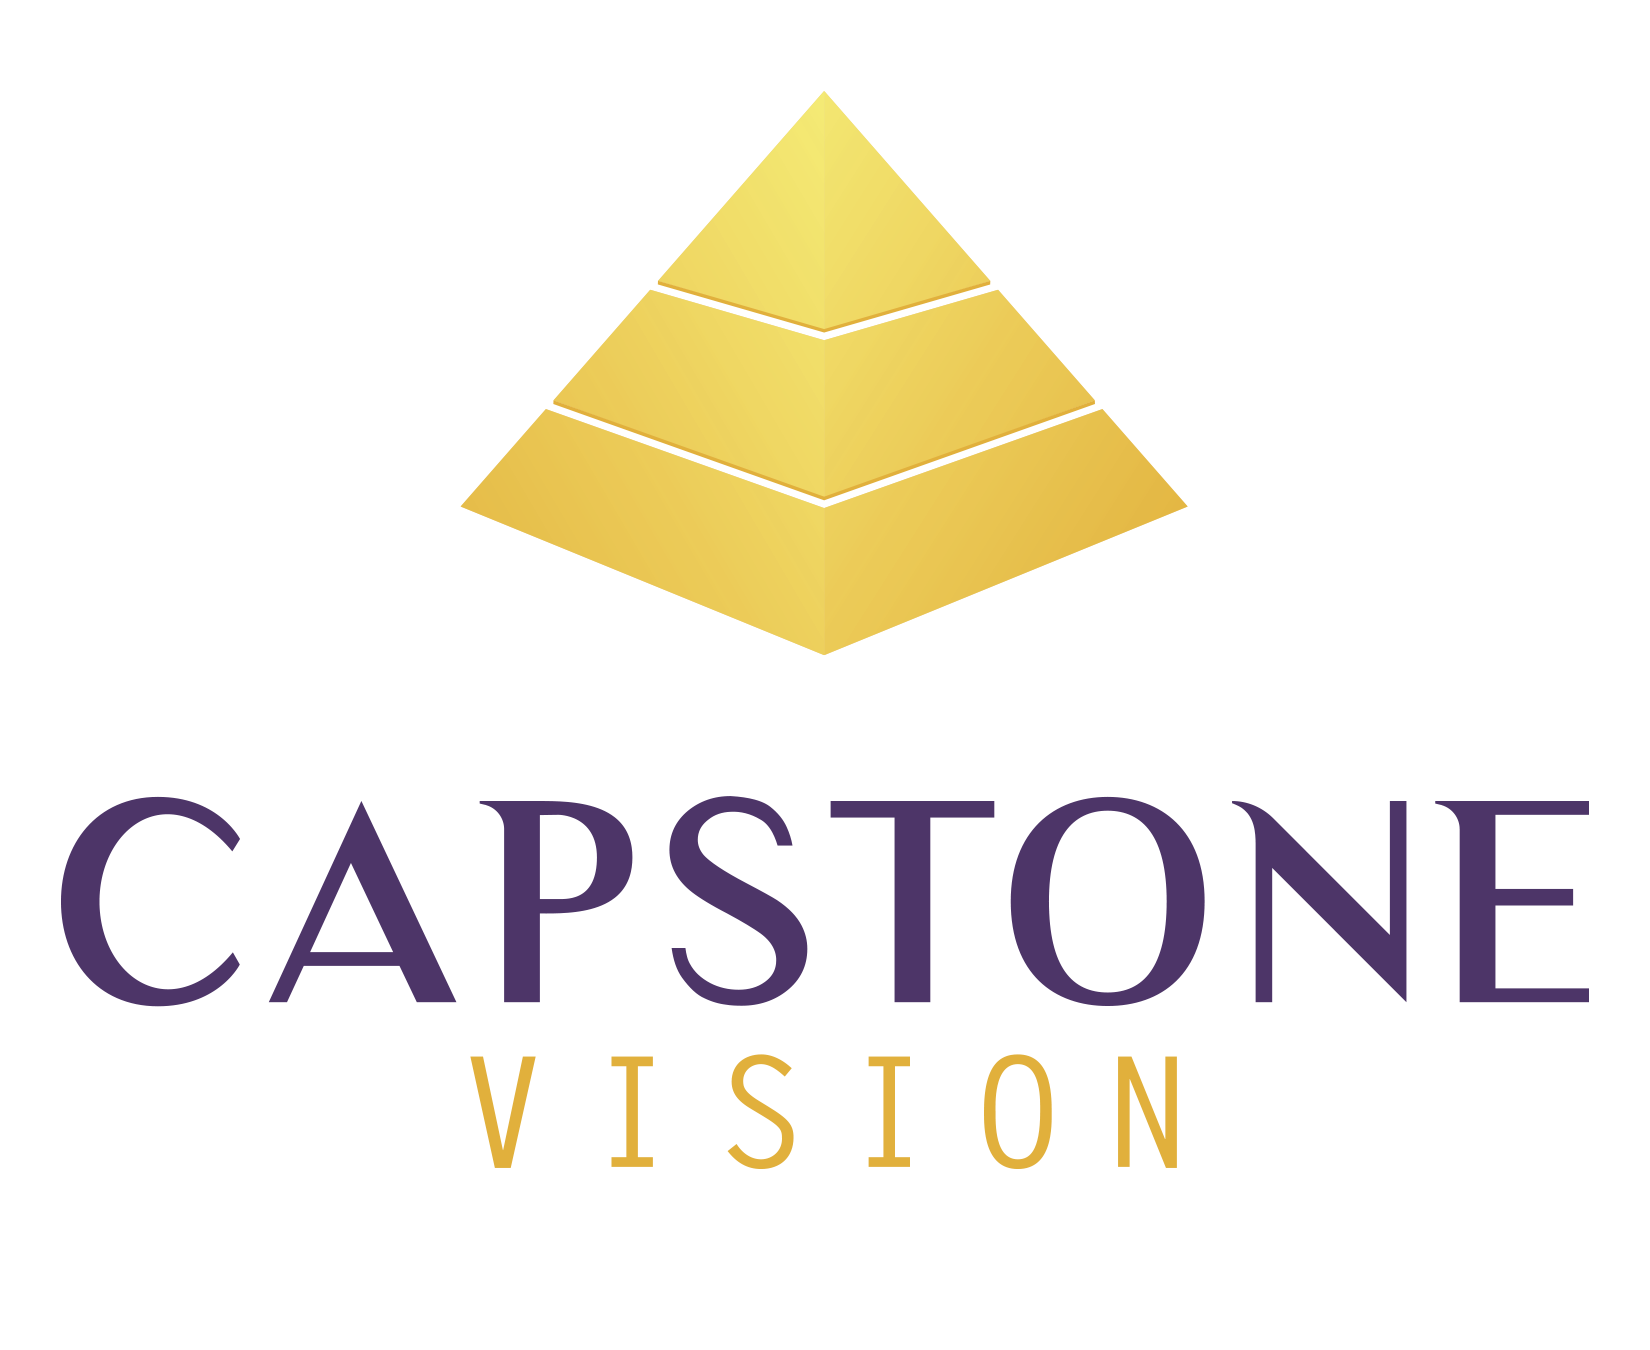 Capstone Vision - Patient-Centered Direct Vision Care for Life 07ceb56e1f0c